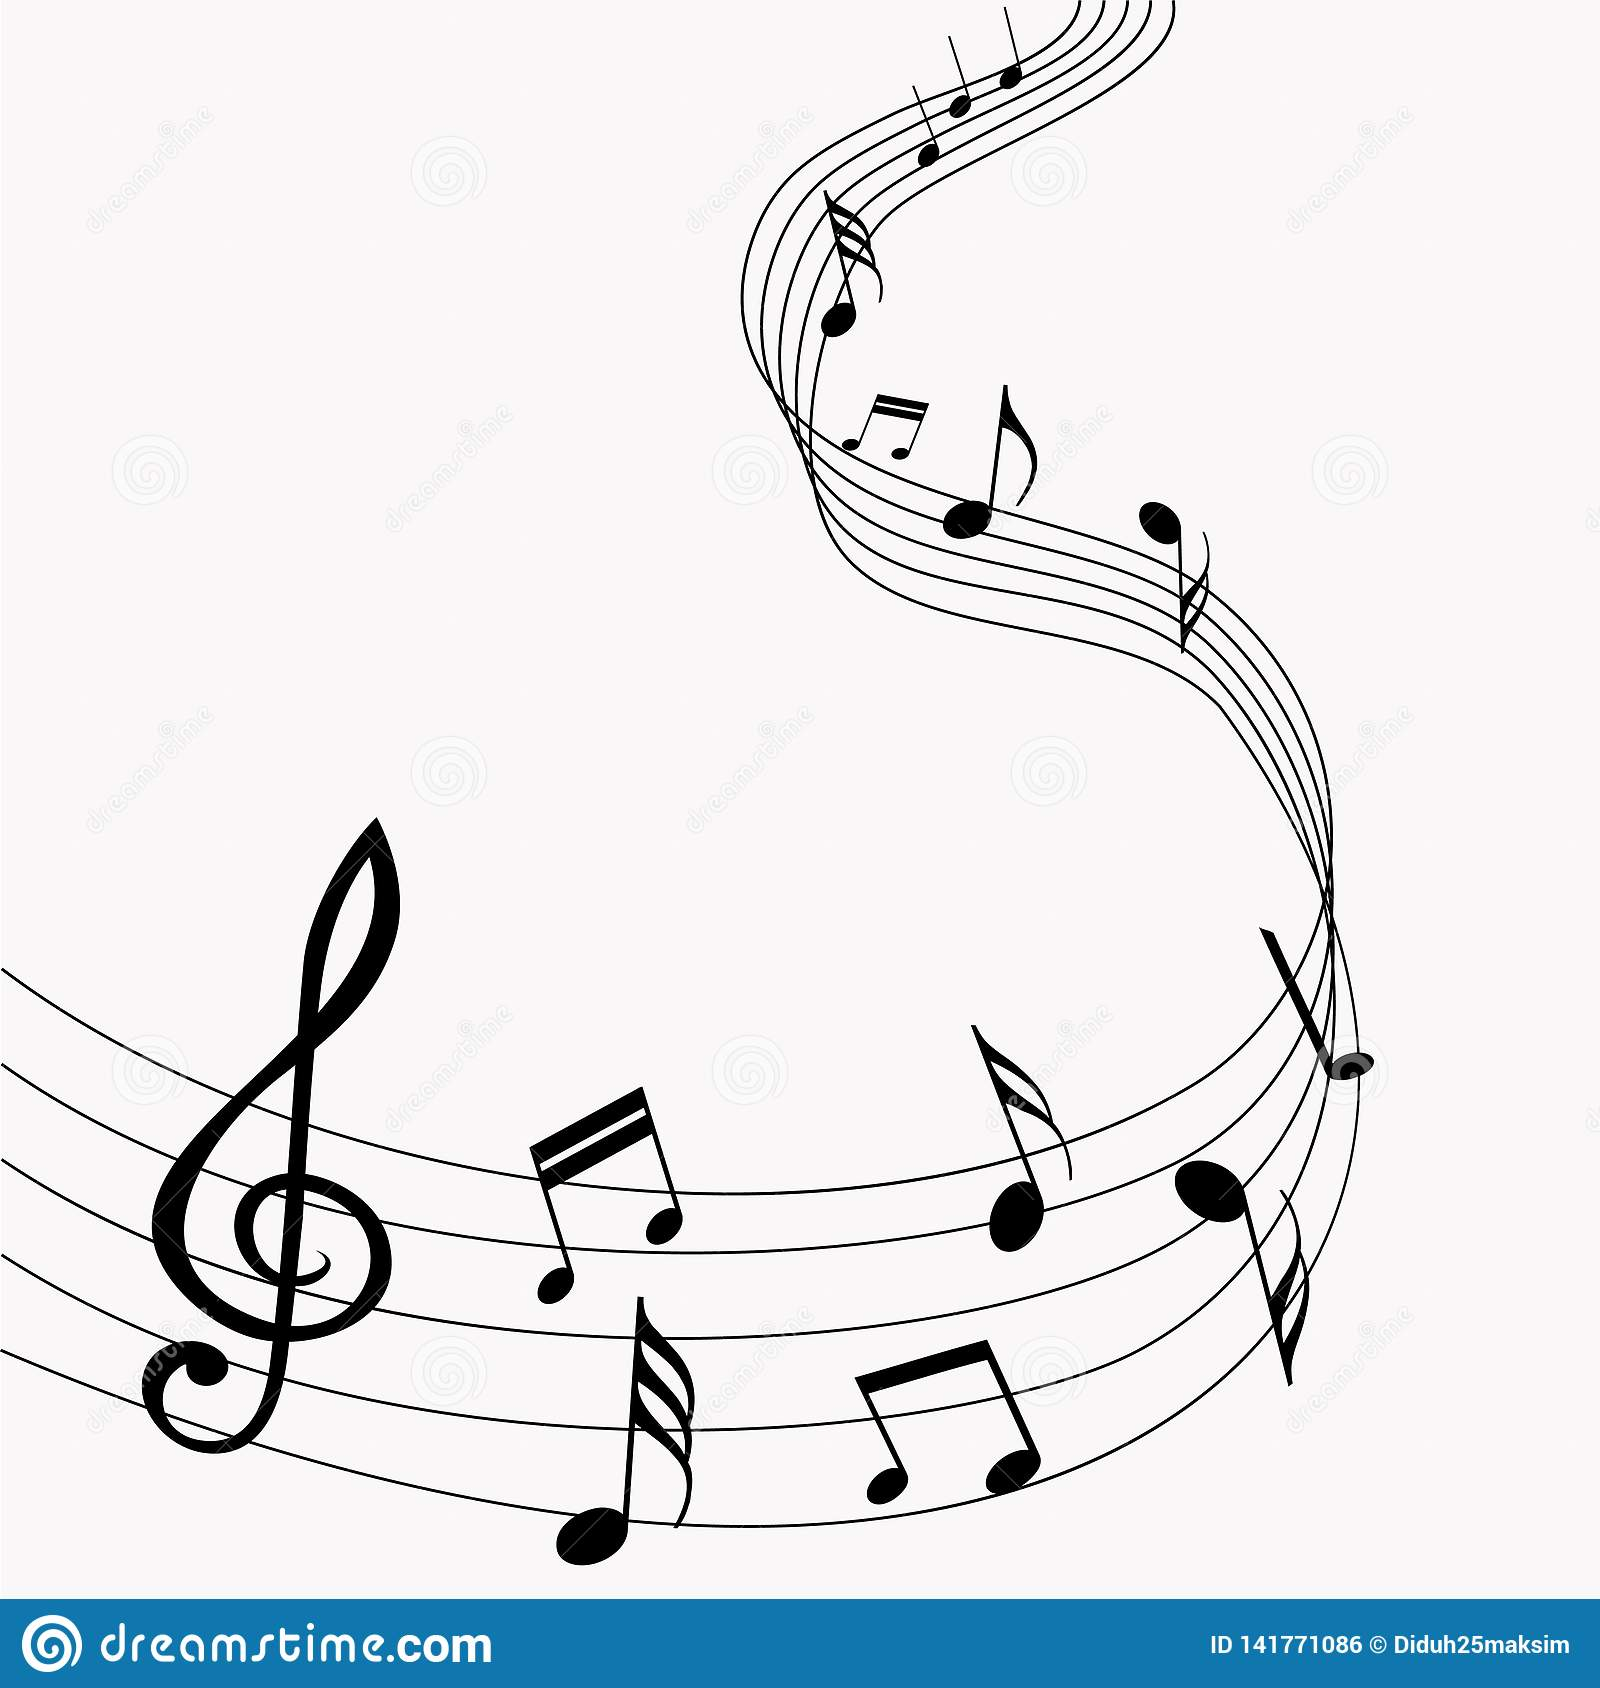 Vector musical notes. Music. Gray background. Vector illustration. EPS 10